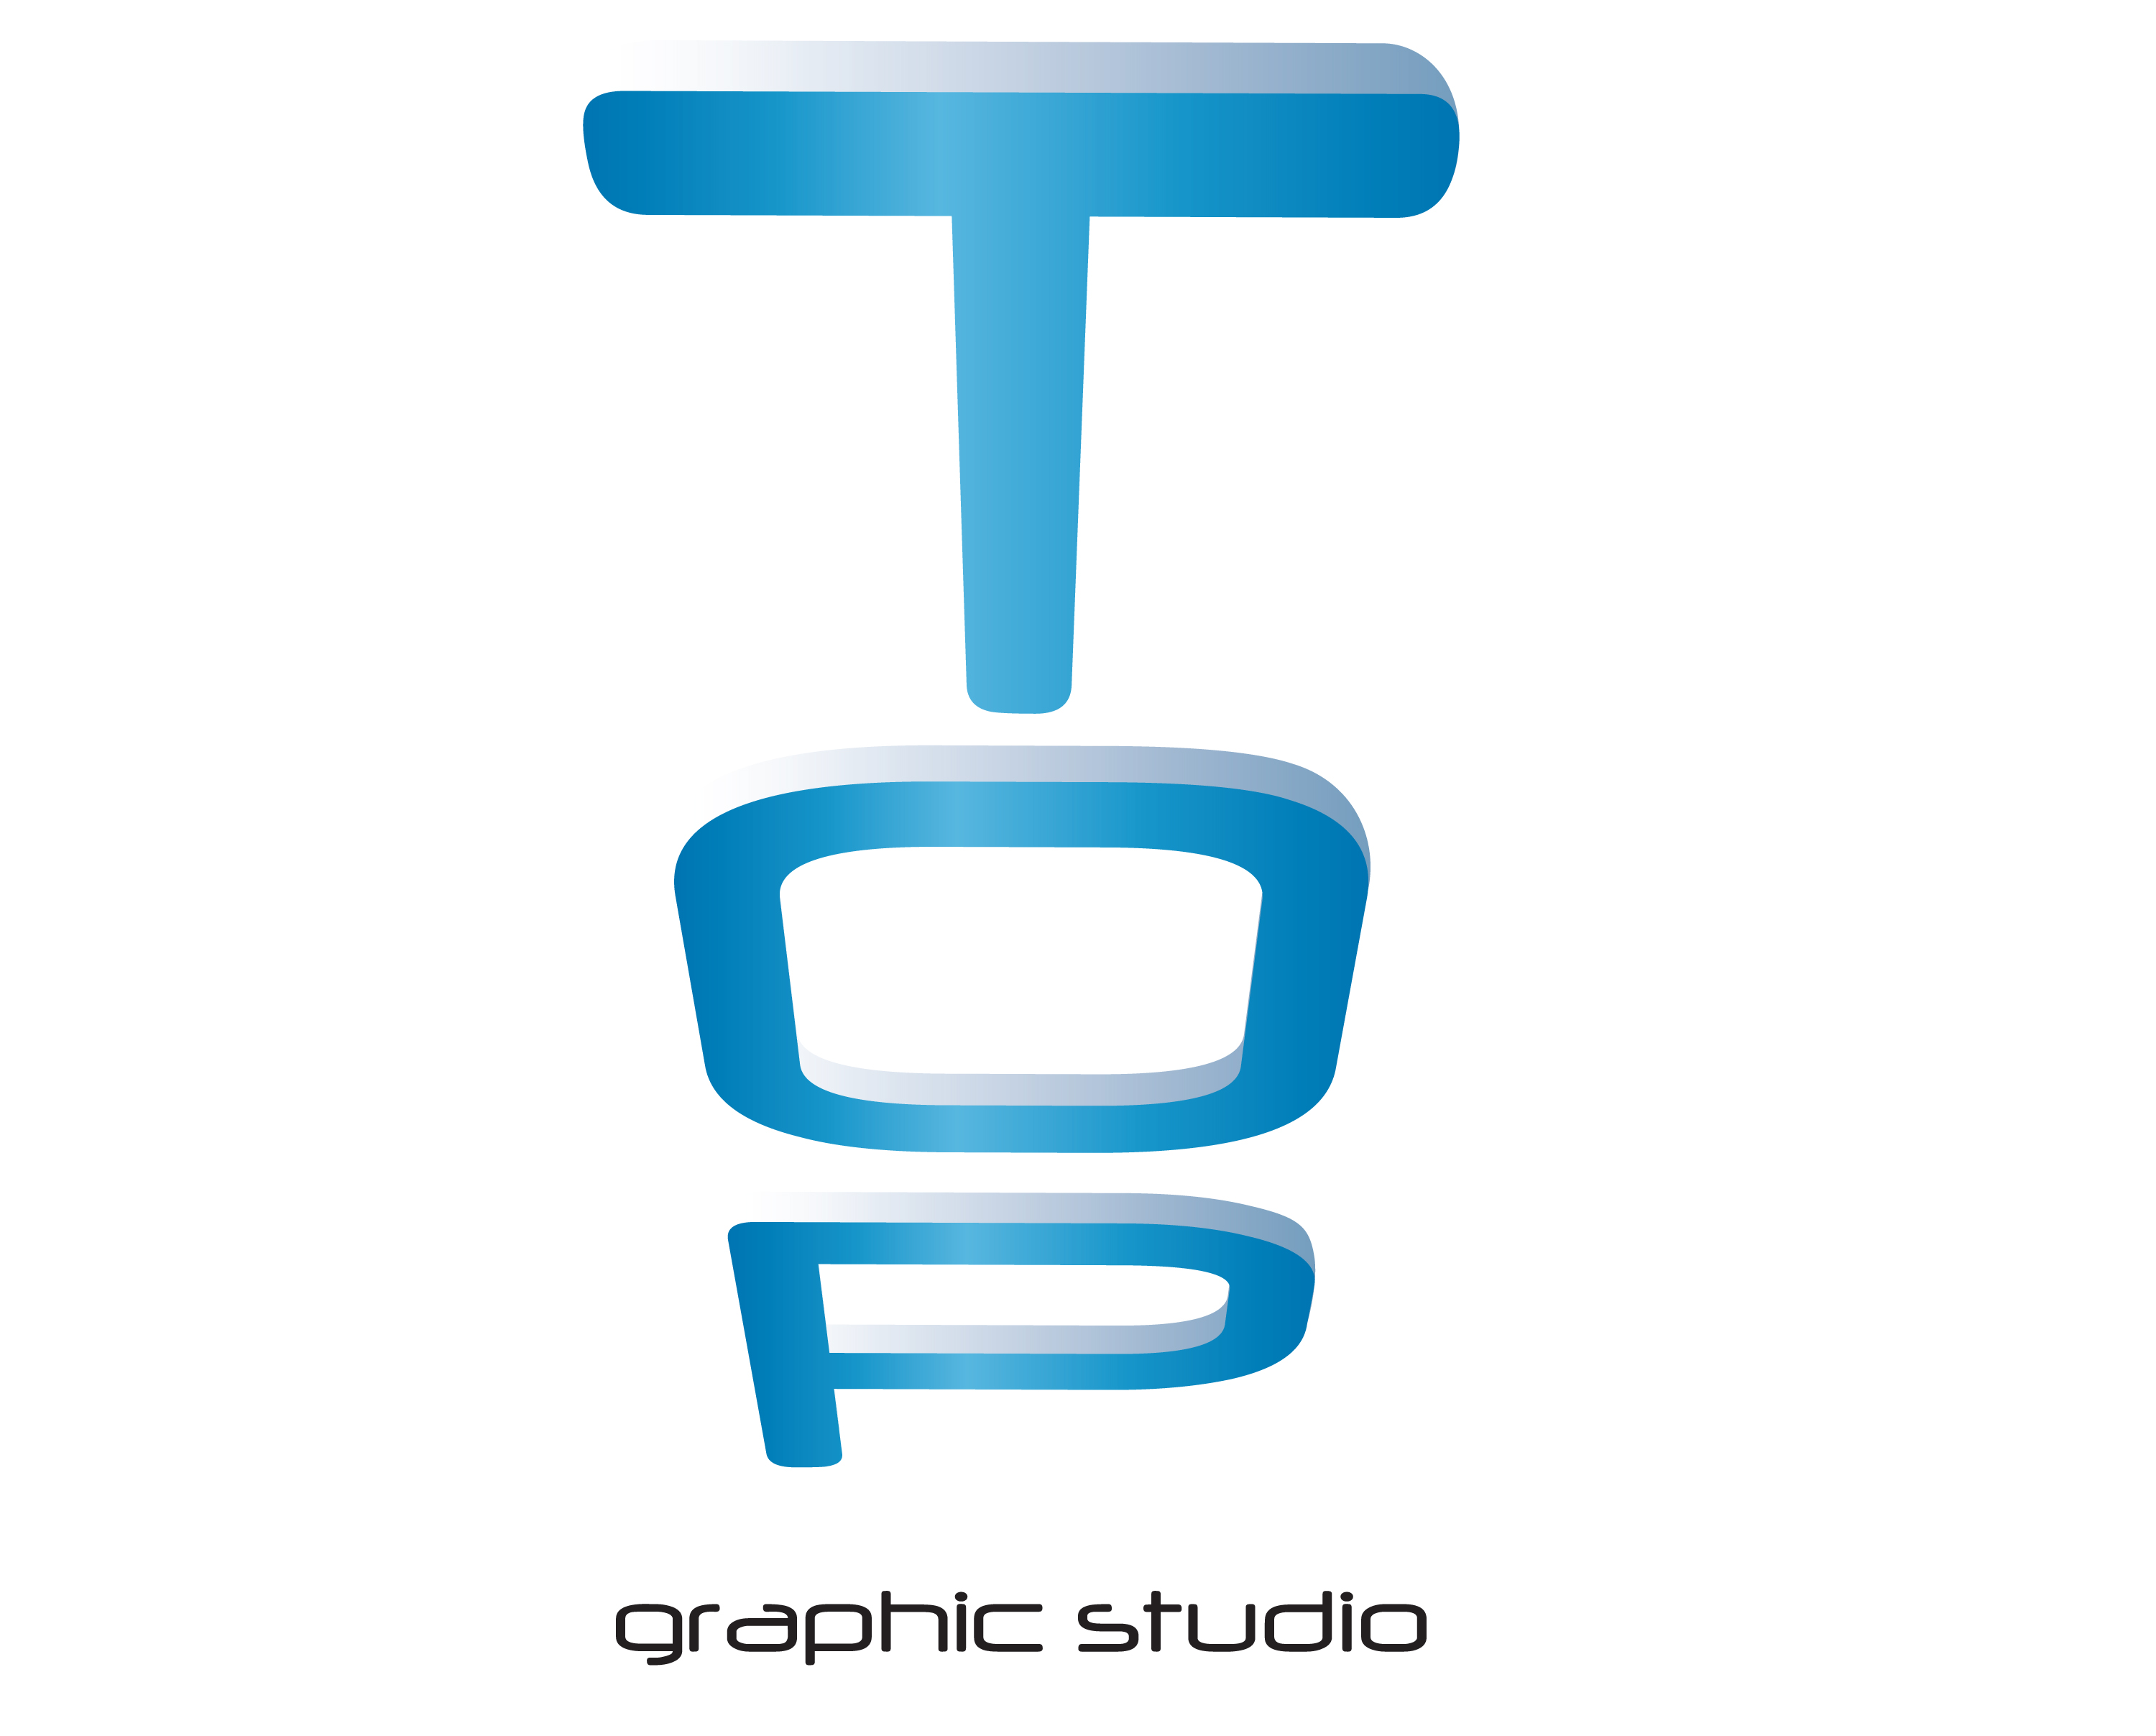 Logo design for a conceptual graphic design studio